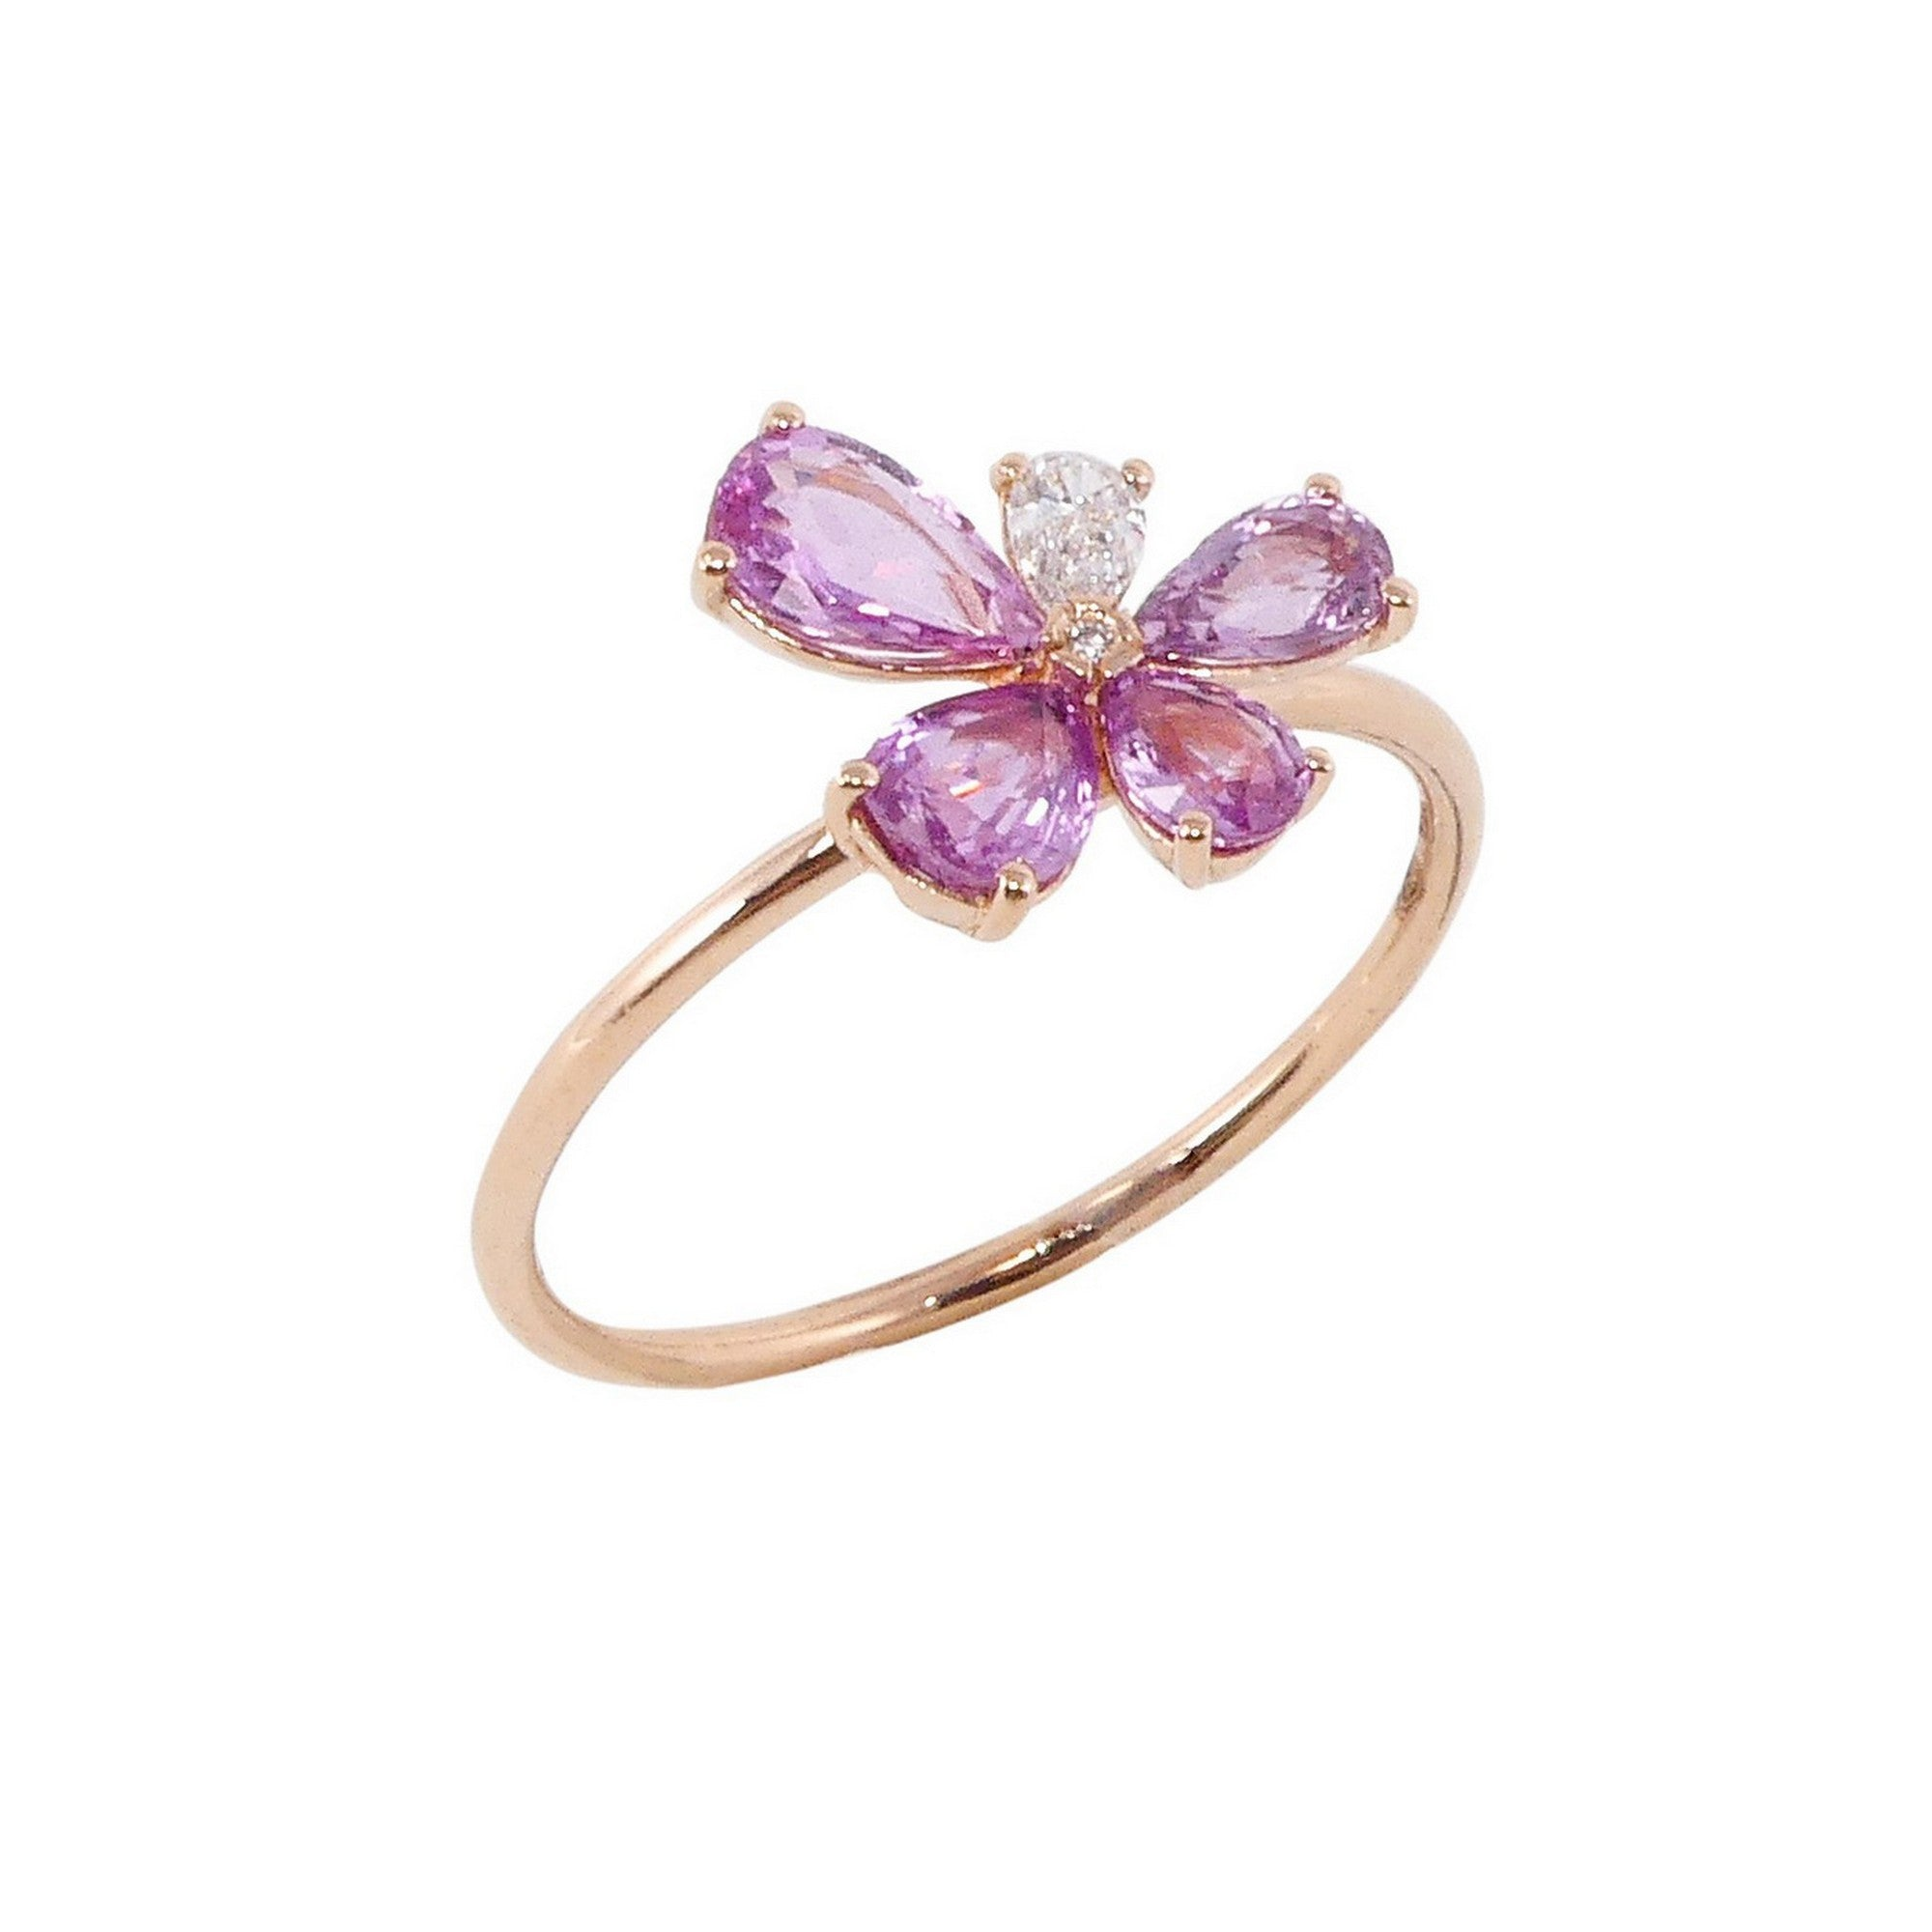 Prato Fiorito Rose Gold Ring With Pink Sapphires Diamonds